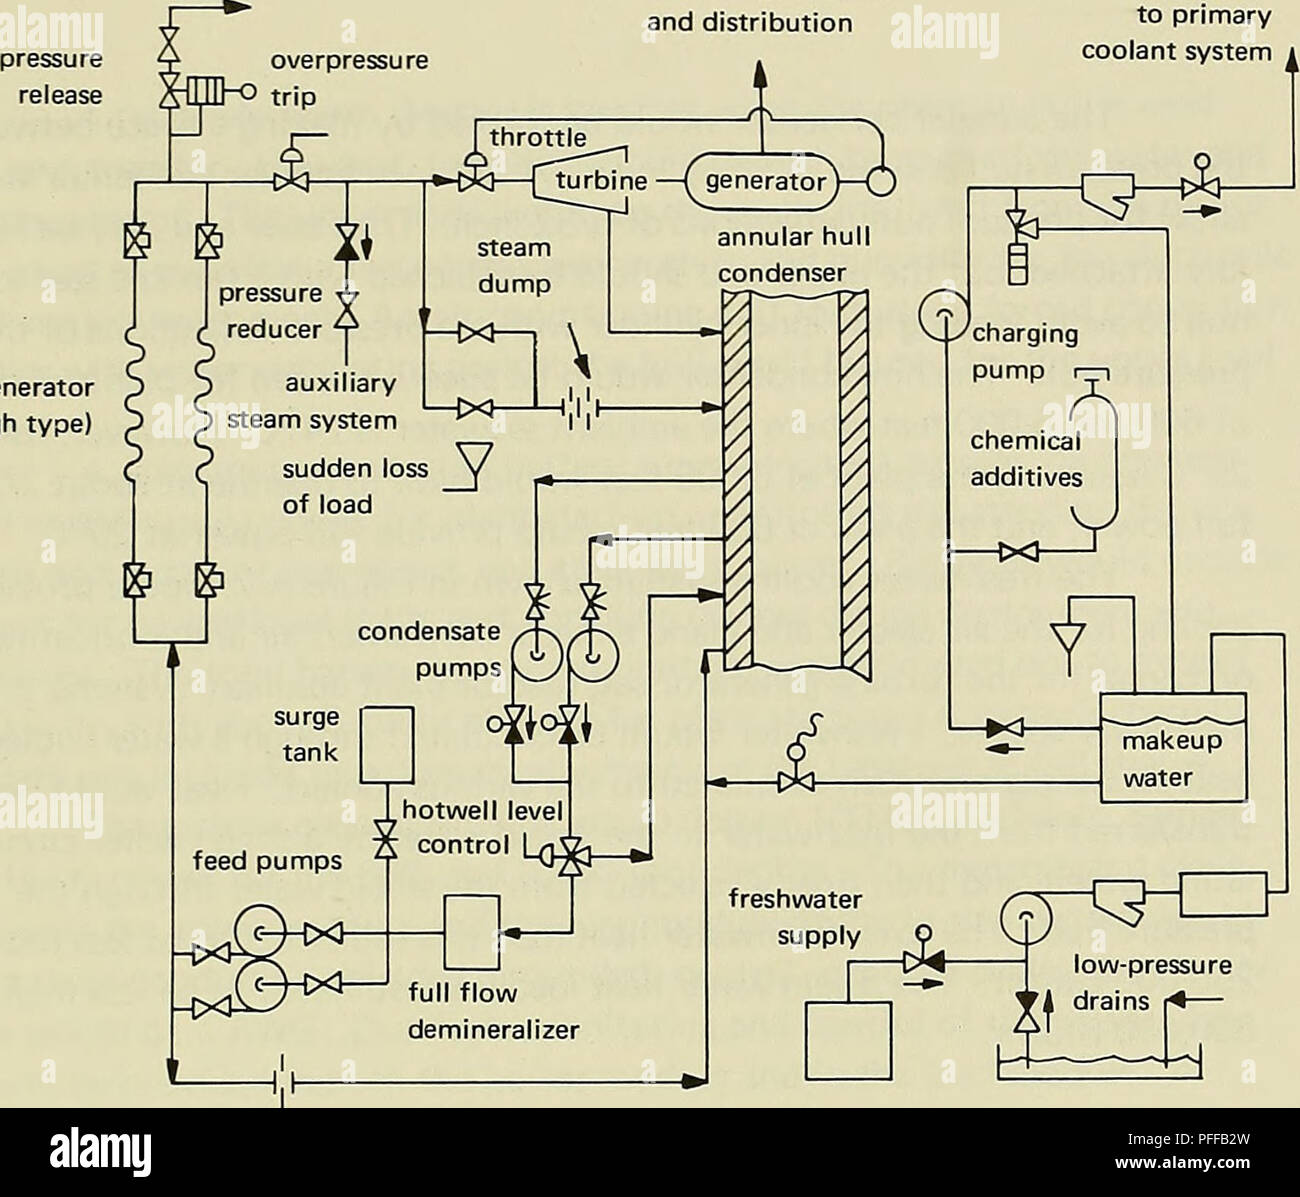 Control Water Flow Rate Stock Photos Hydroelectric Power Plant Diagram Deep Ocean Systems Electric Distribution Plants Steam Generator